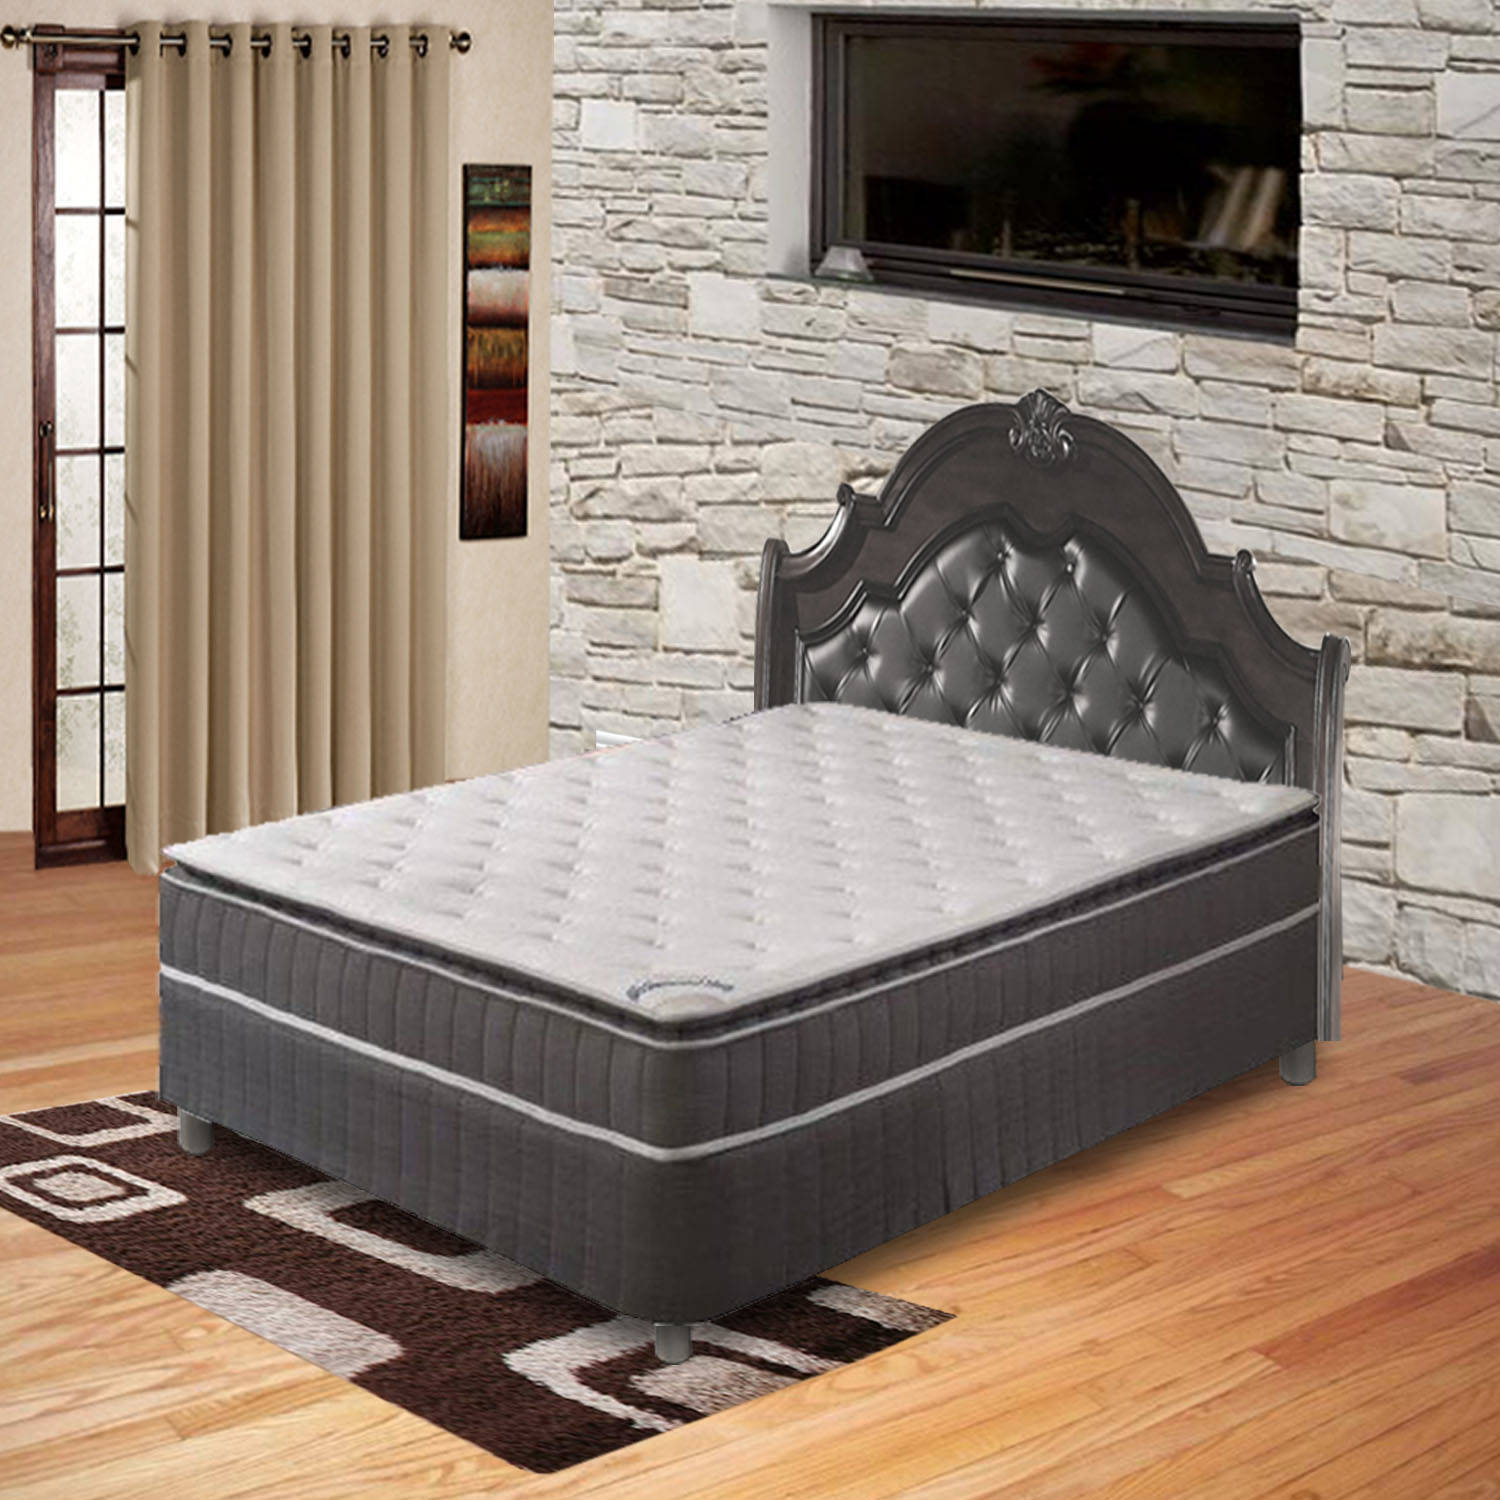 Pillow Top Pocketed Coil Orthopedic Mattress and 5-inch Box Spring, Acura Collection, Multiple Sizes